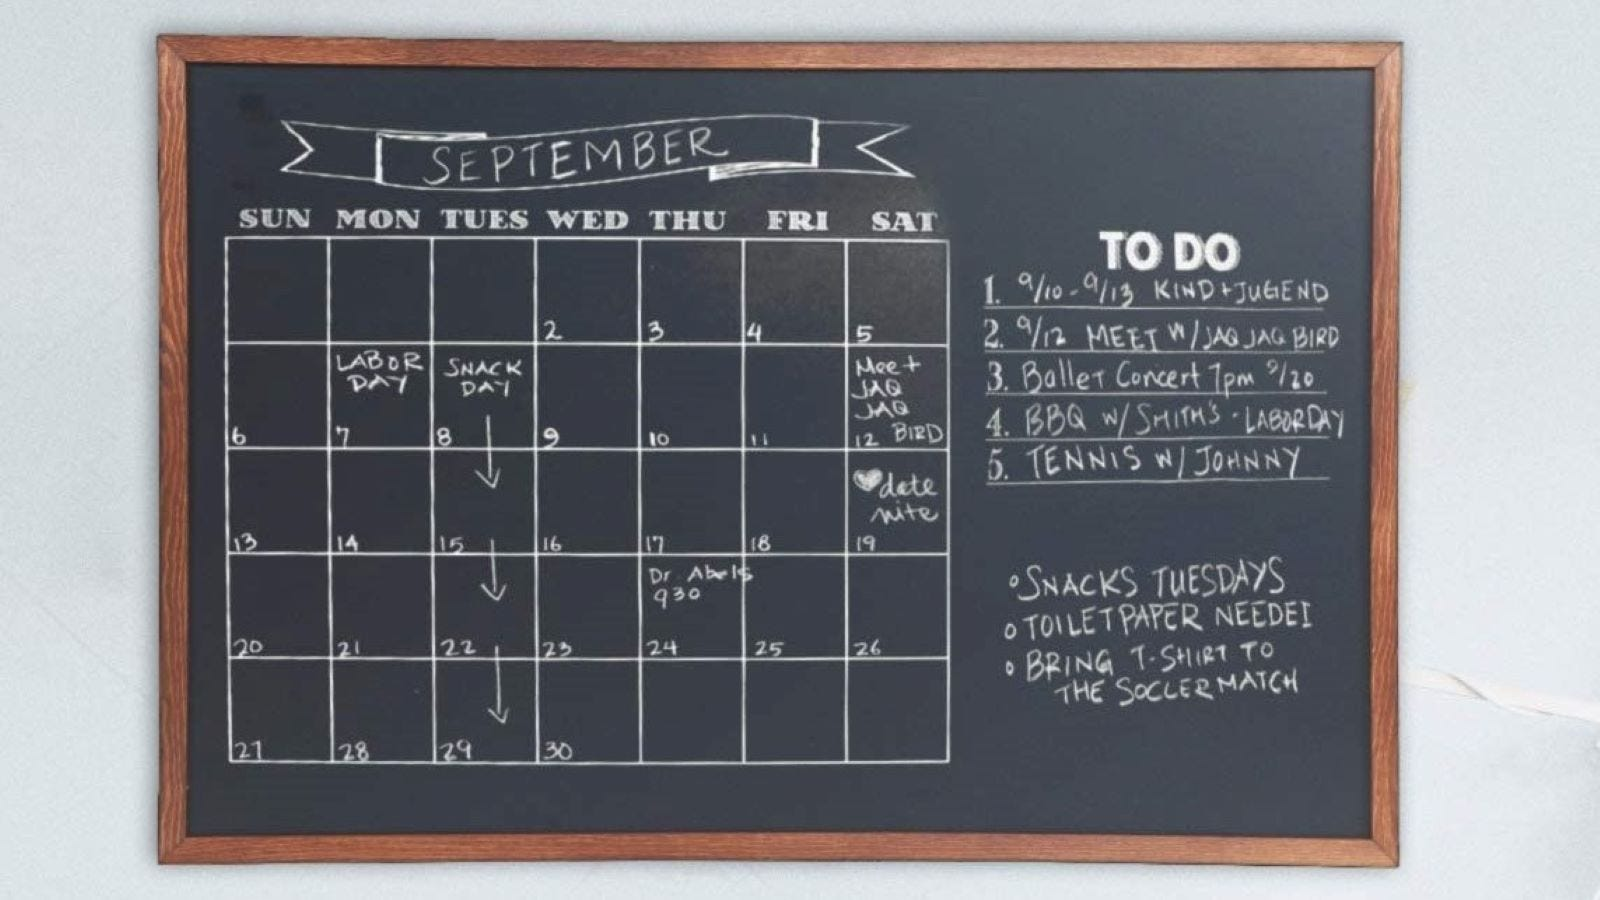 The month of September and a To do list on a chalkboard.